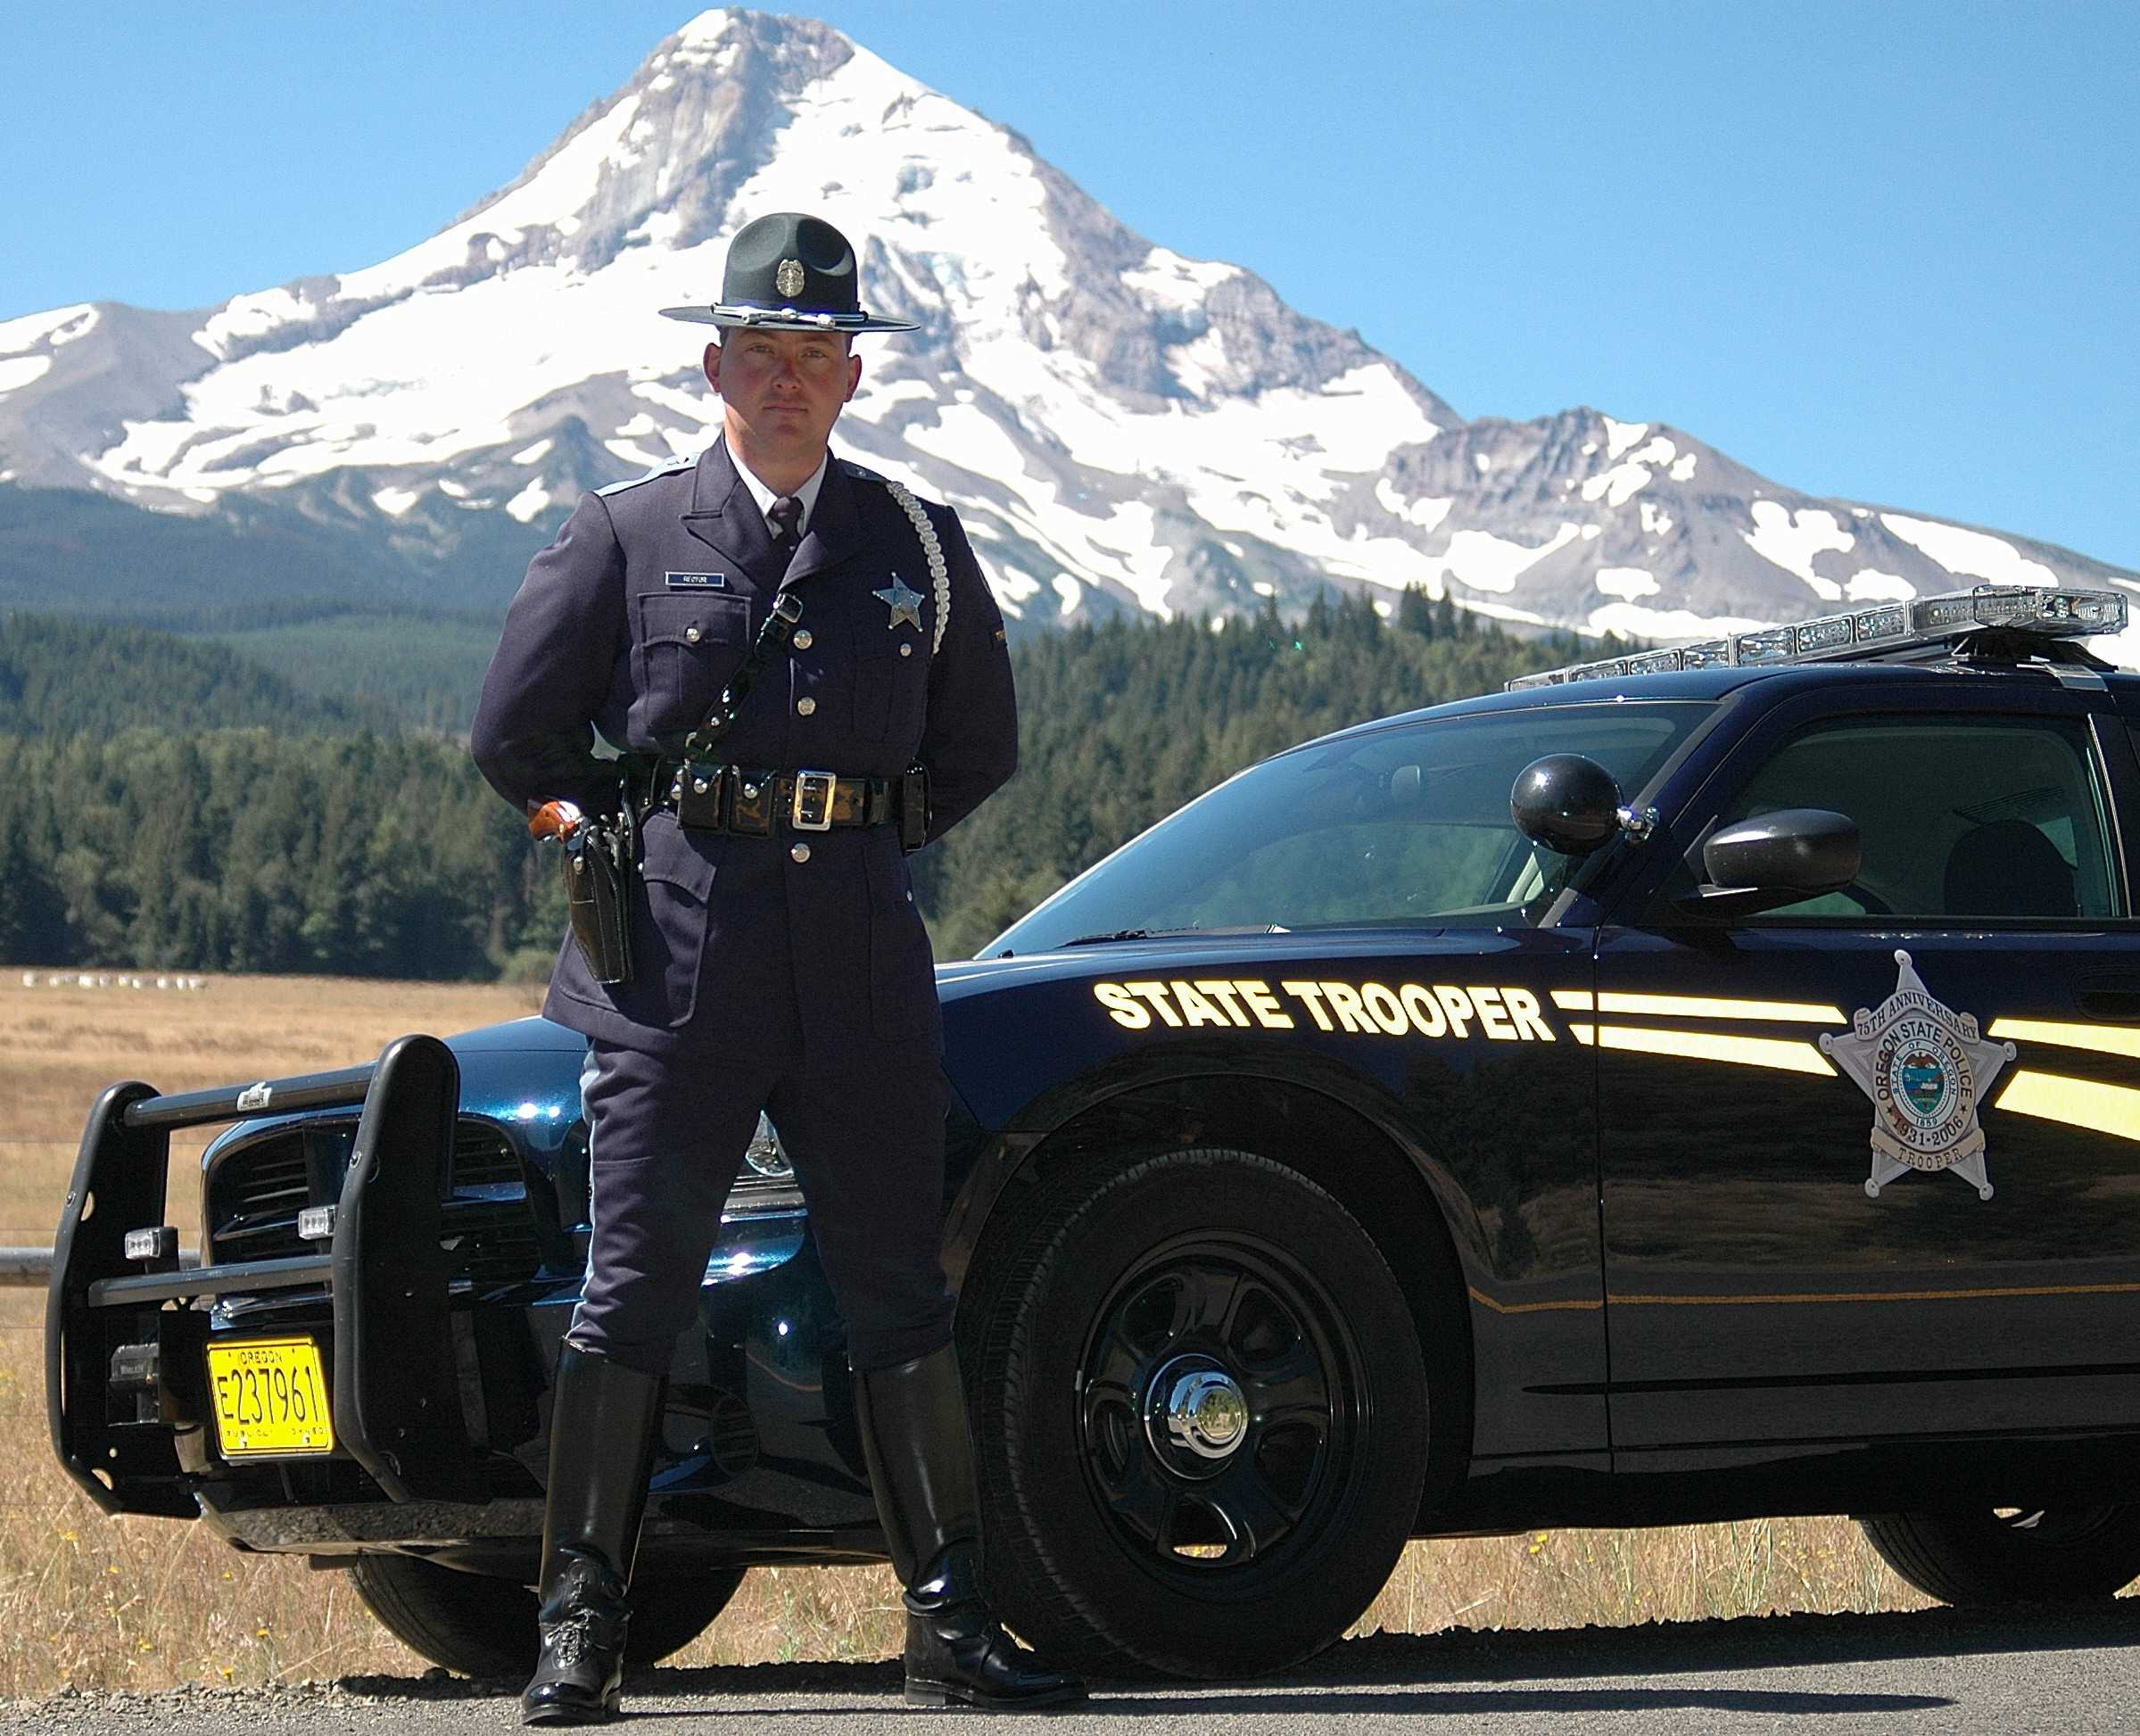 The Oregon State Troopers use the NPOST as their Written Exam